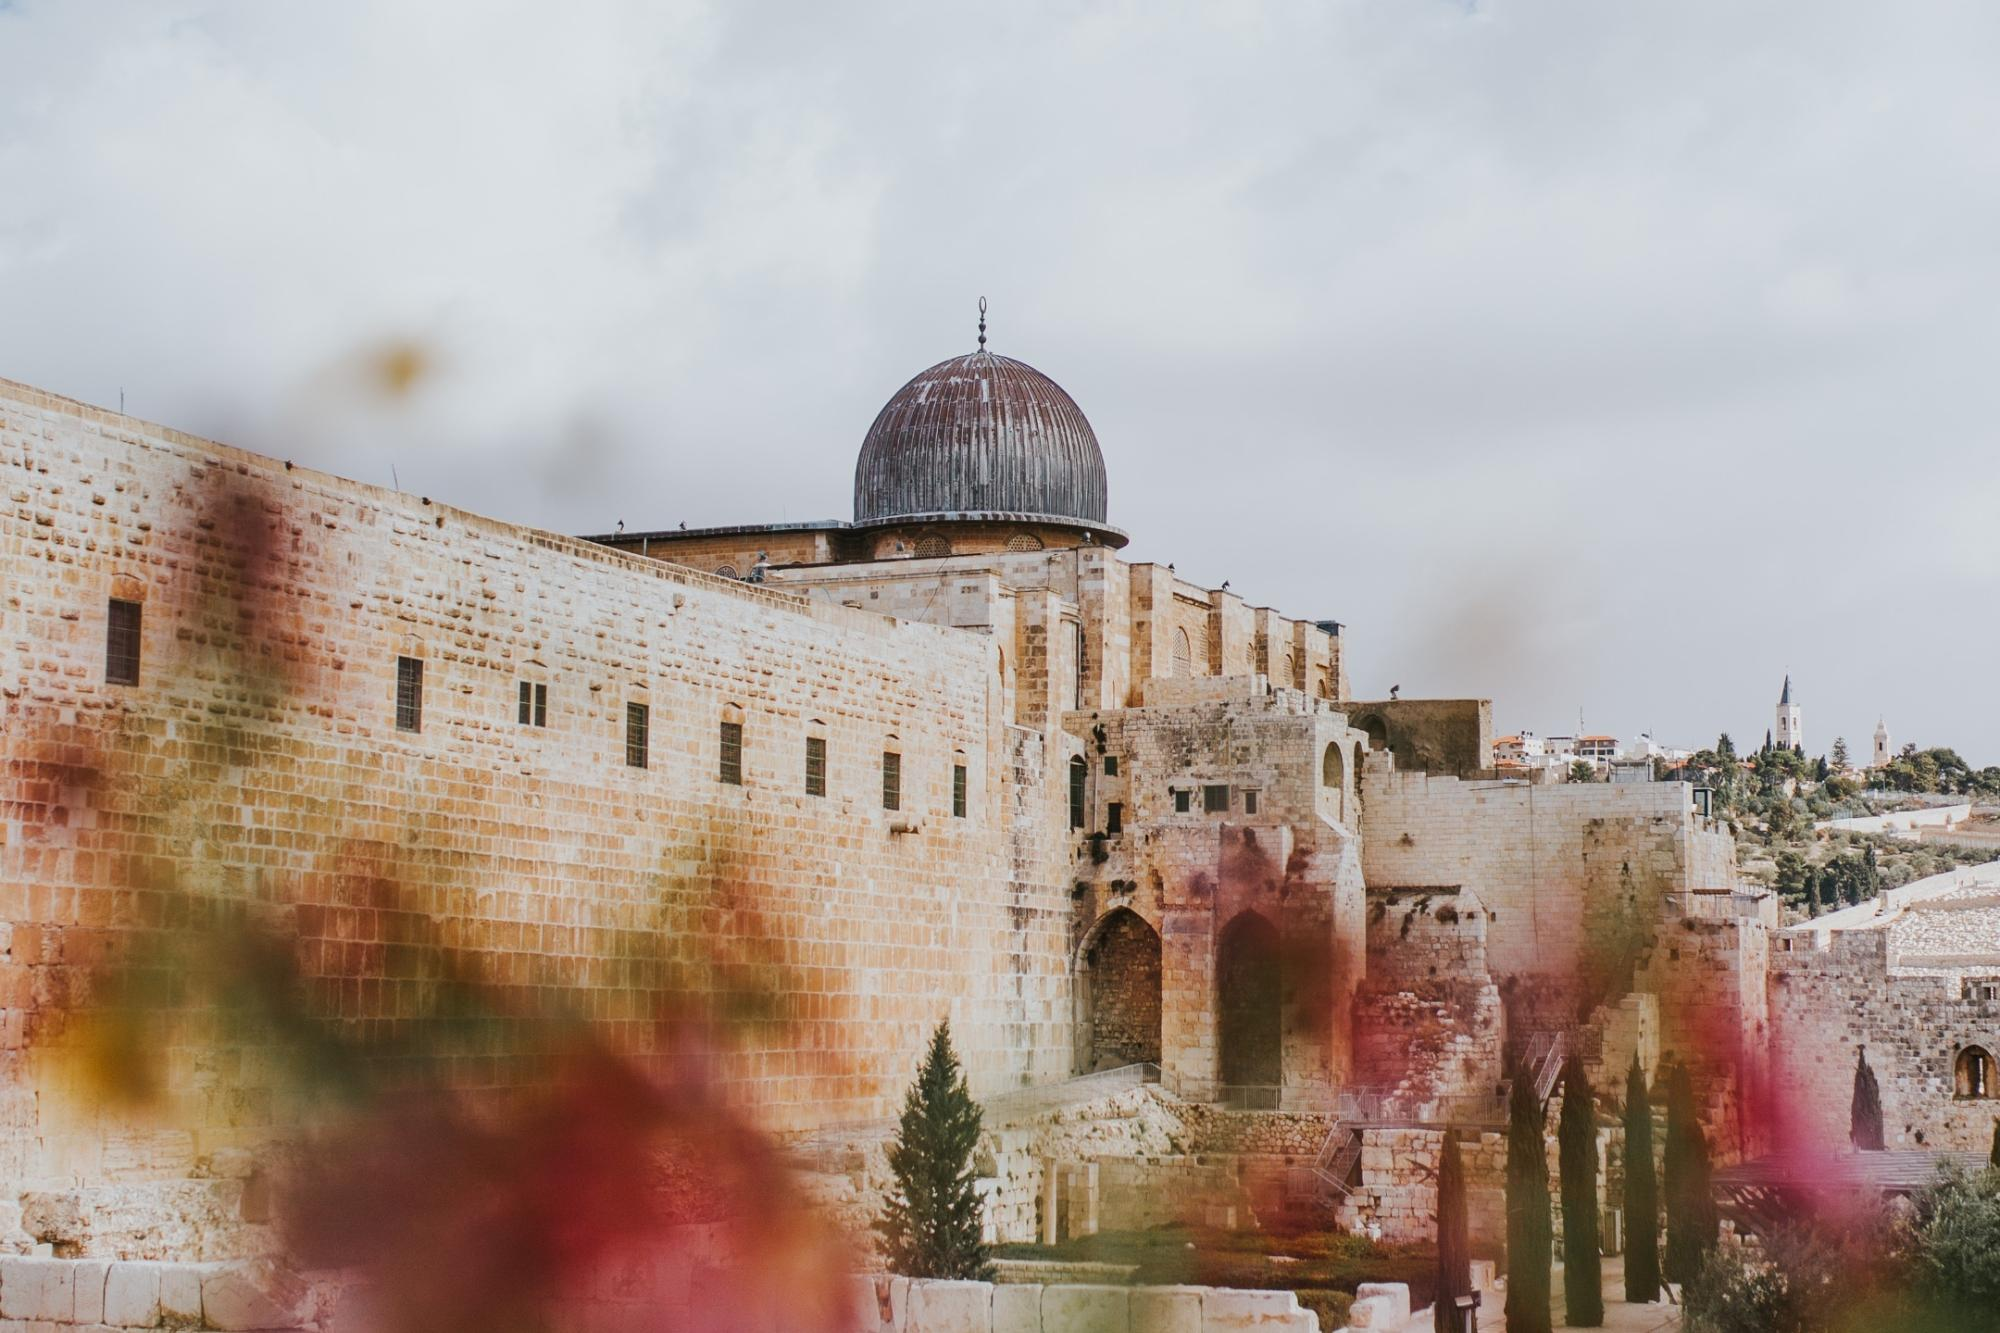 Jerusalem (c) Photo by Cole Keister on Unsplash